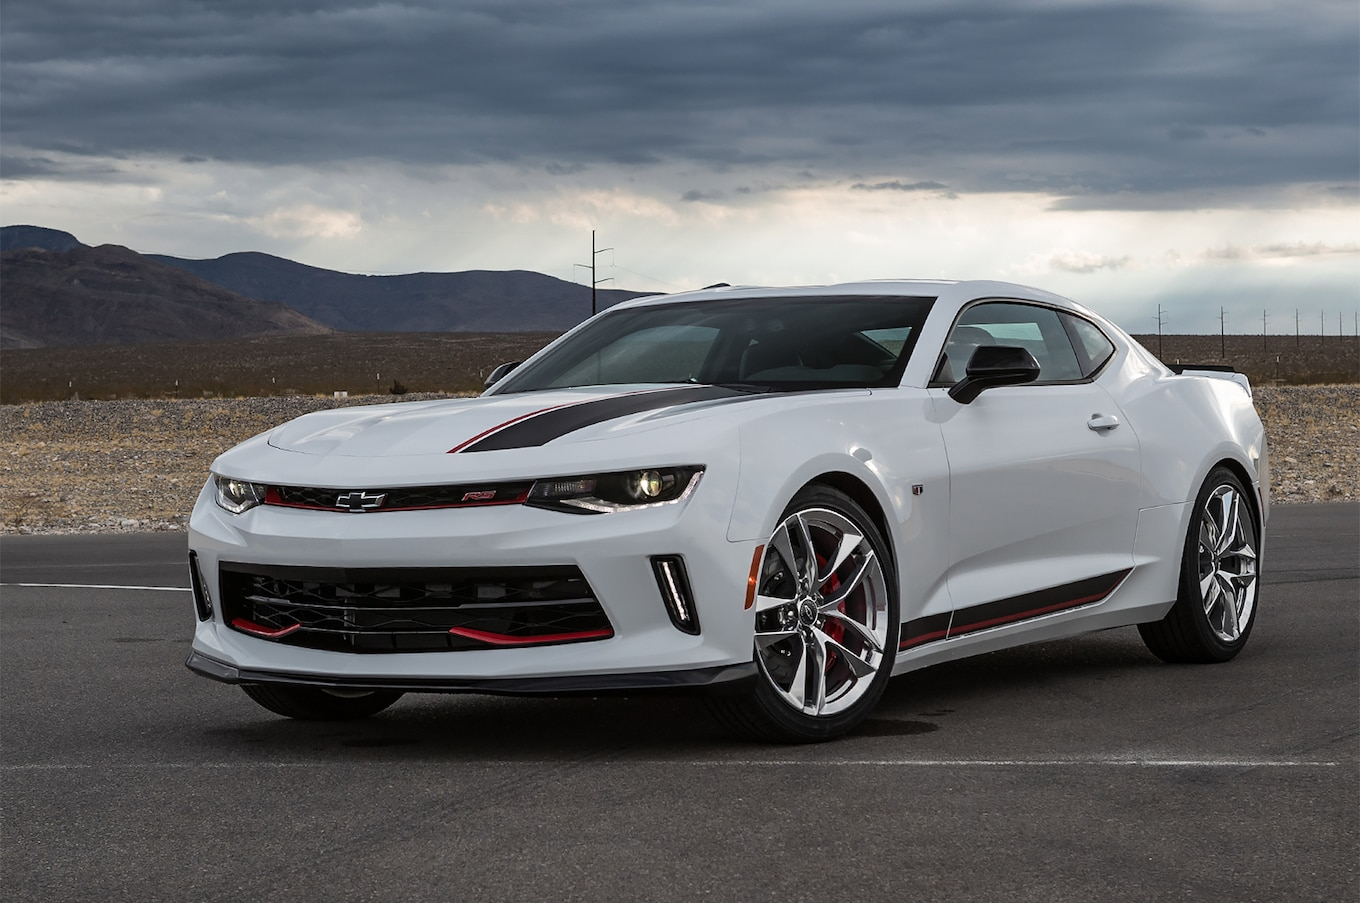 2017 Chevrolet Camaro Review: Driving Three Camaros With ...